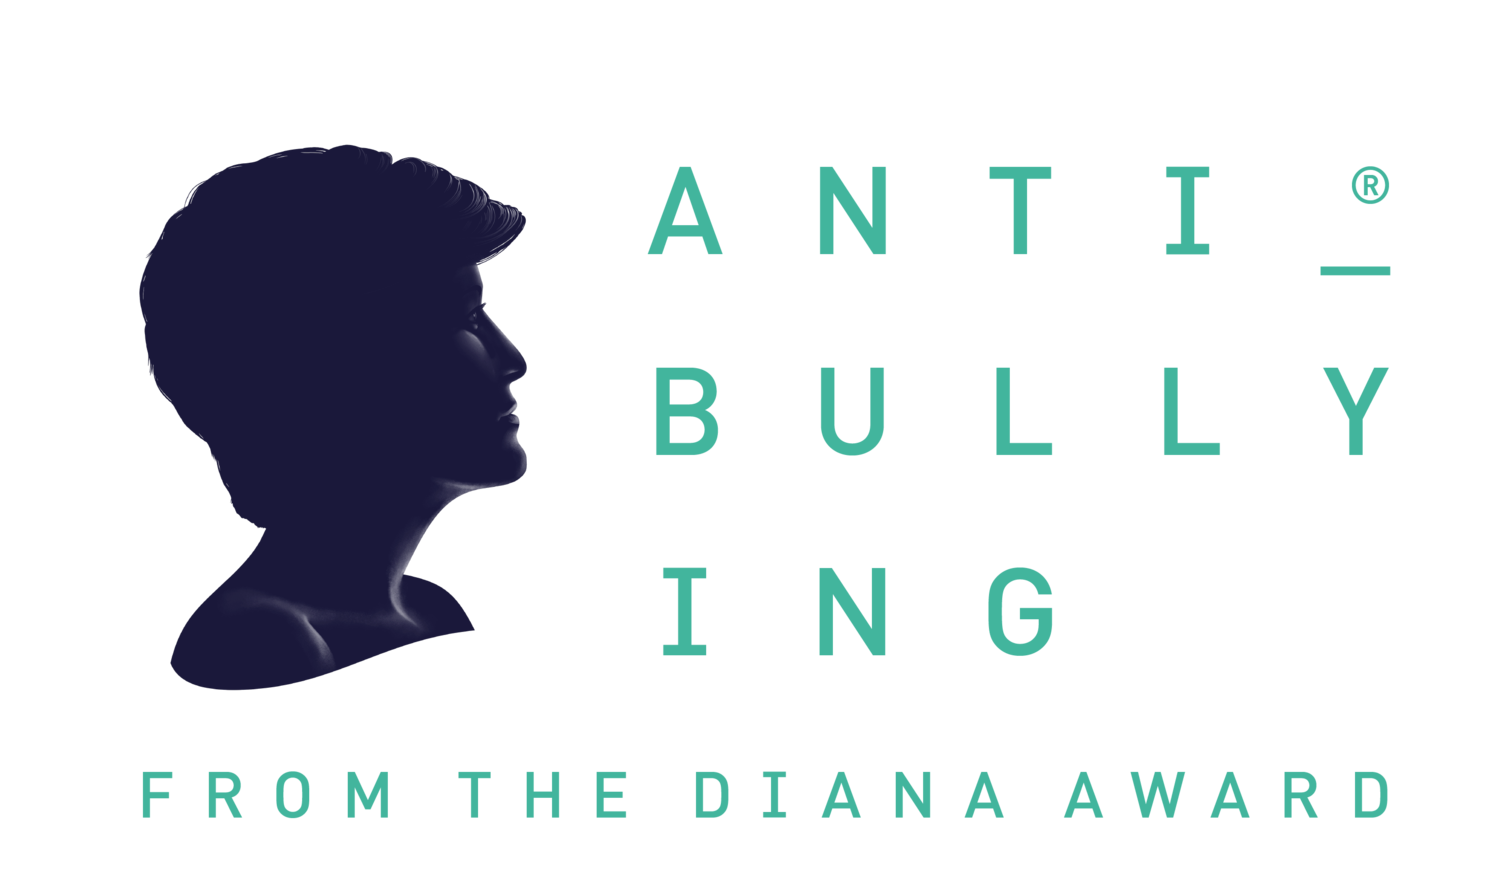 Thesis Example Essay Antibullying From The Diana Award  Antibullying Charity  Bullying  Charity Based In The Uk Research Essay Papers also Business Law Essay Questions Antibullying From The Diana Award  Antibullying Charity  Model Essay English